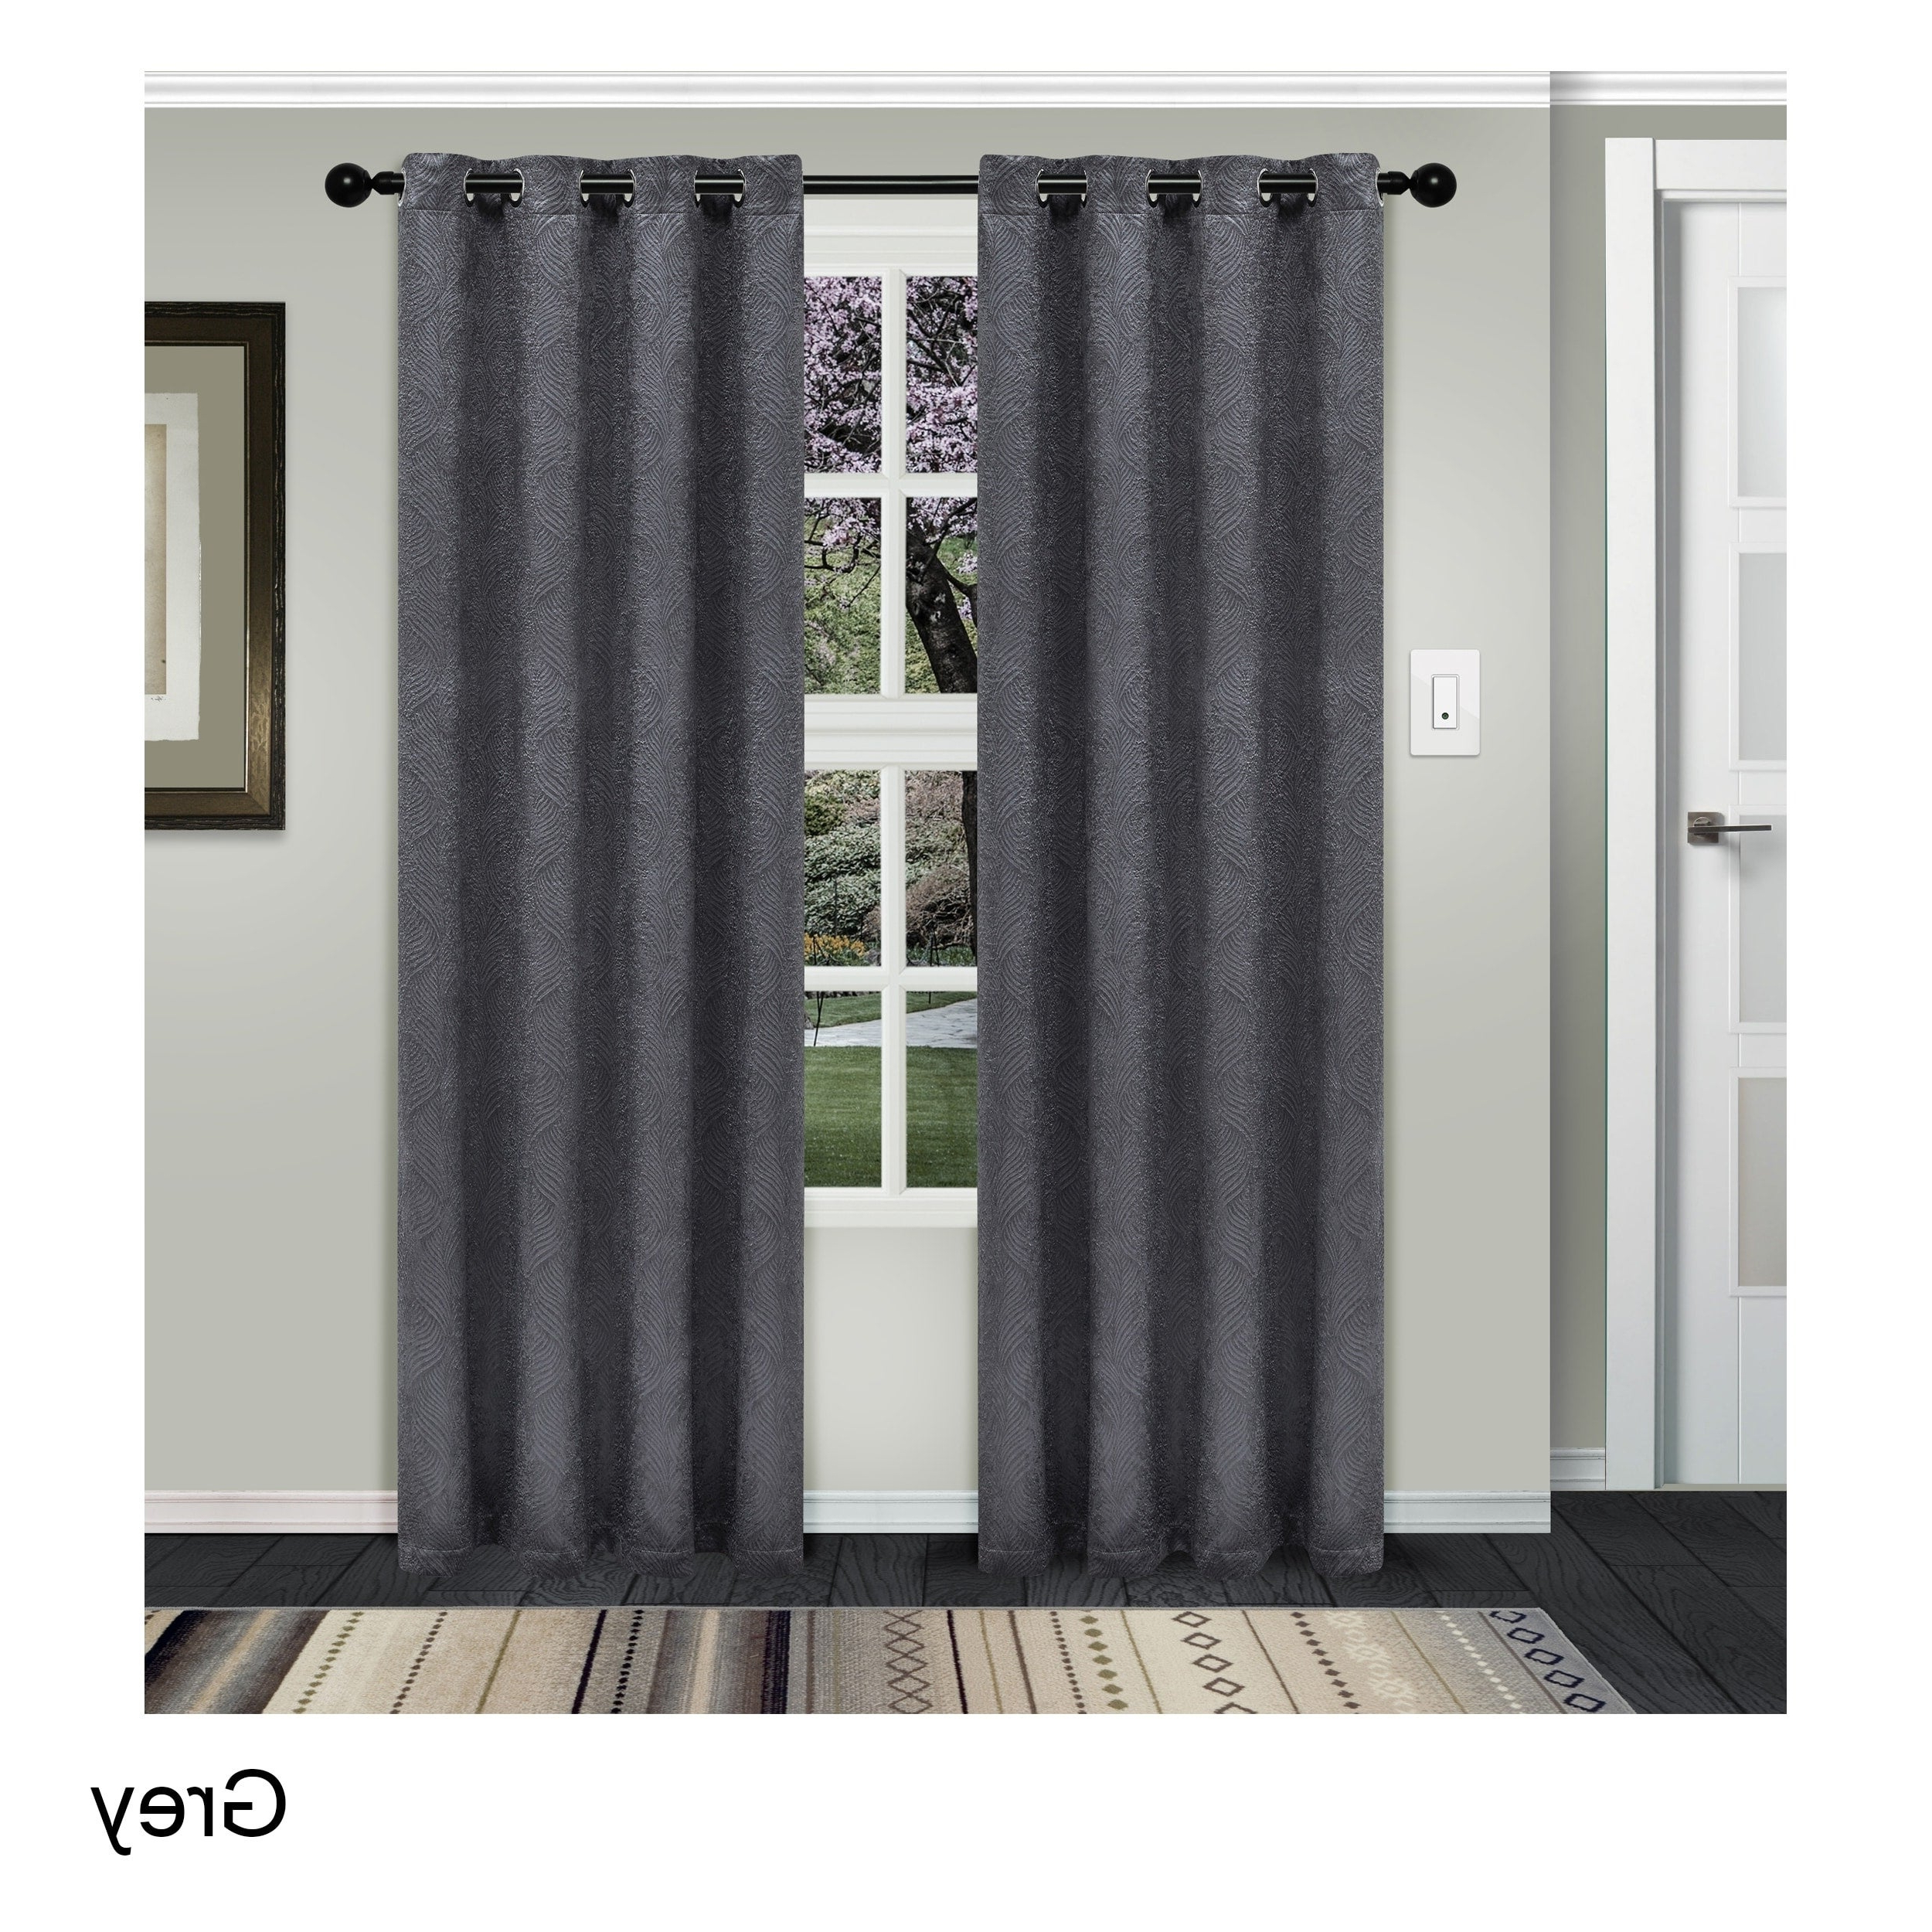 Superior Waverly Insulated Thermal Blackout Grommet Curtain Panel Pair Regarding Famous Embossed Thermal Weaved Blackout Grommet Drapery Curtains (View 14 of 20)